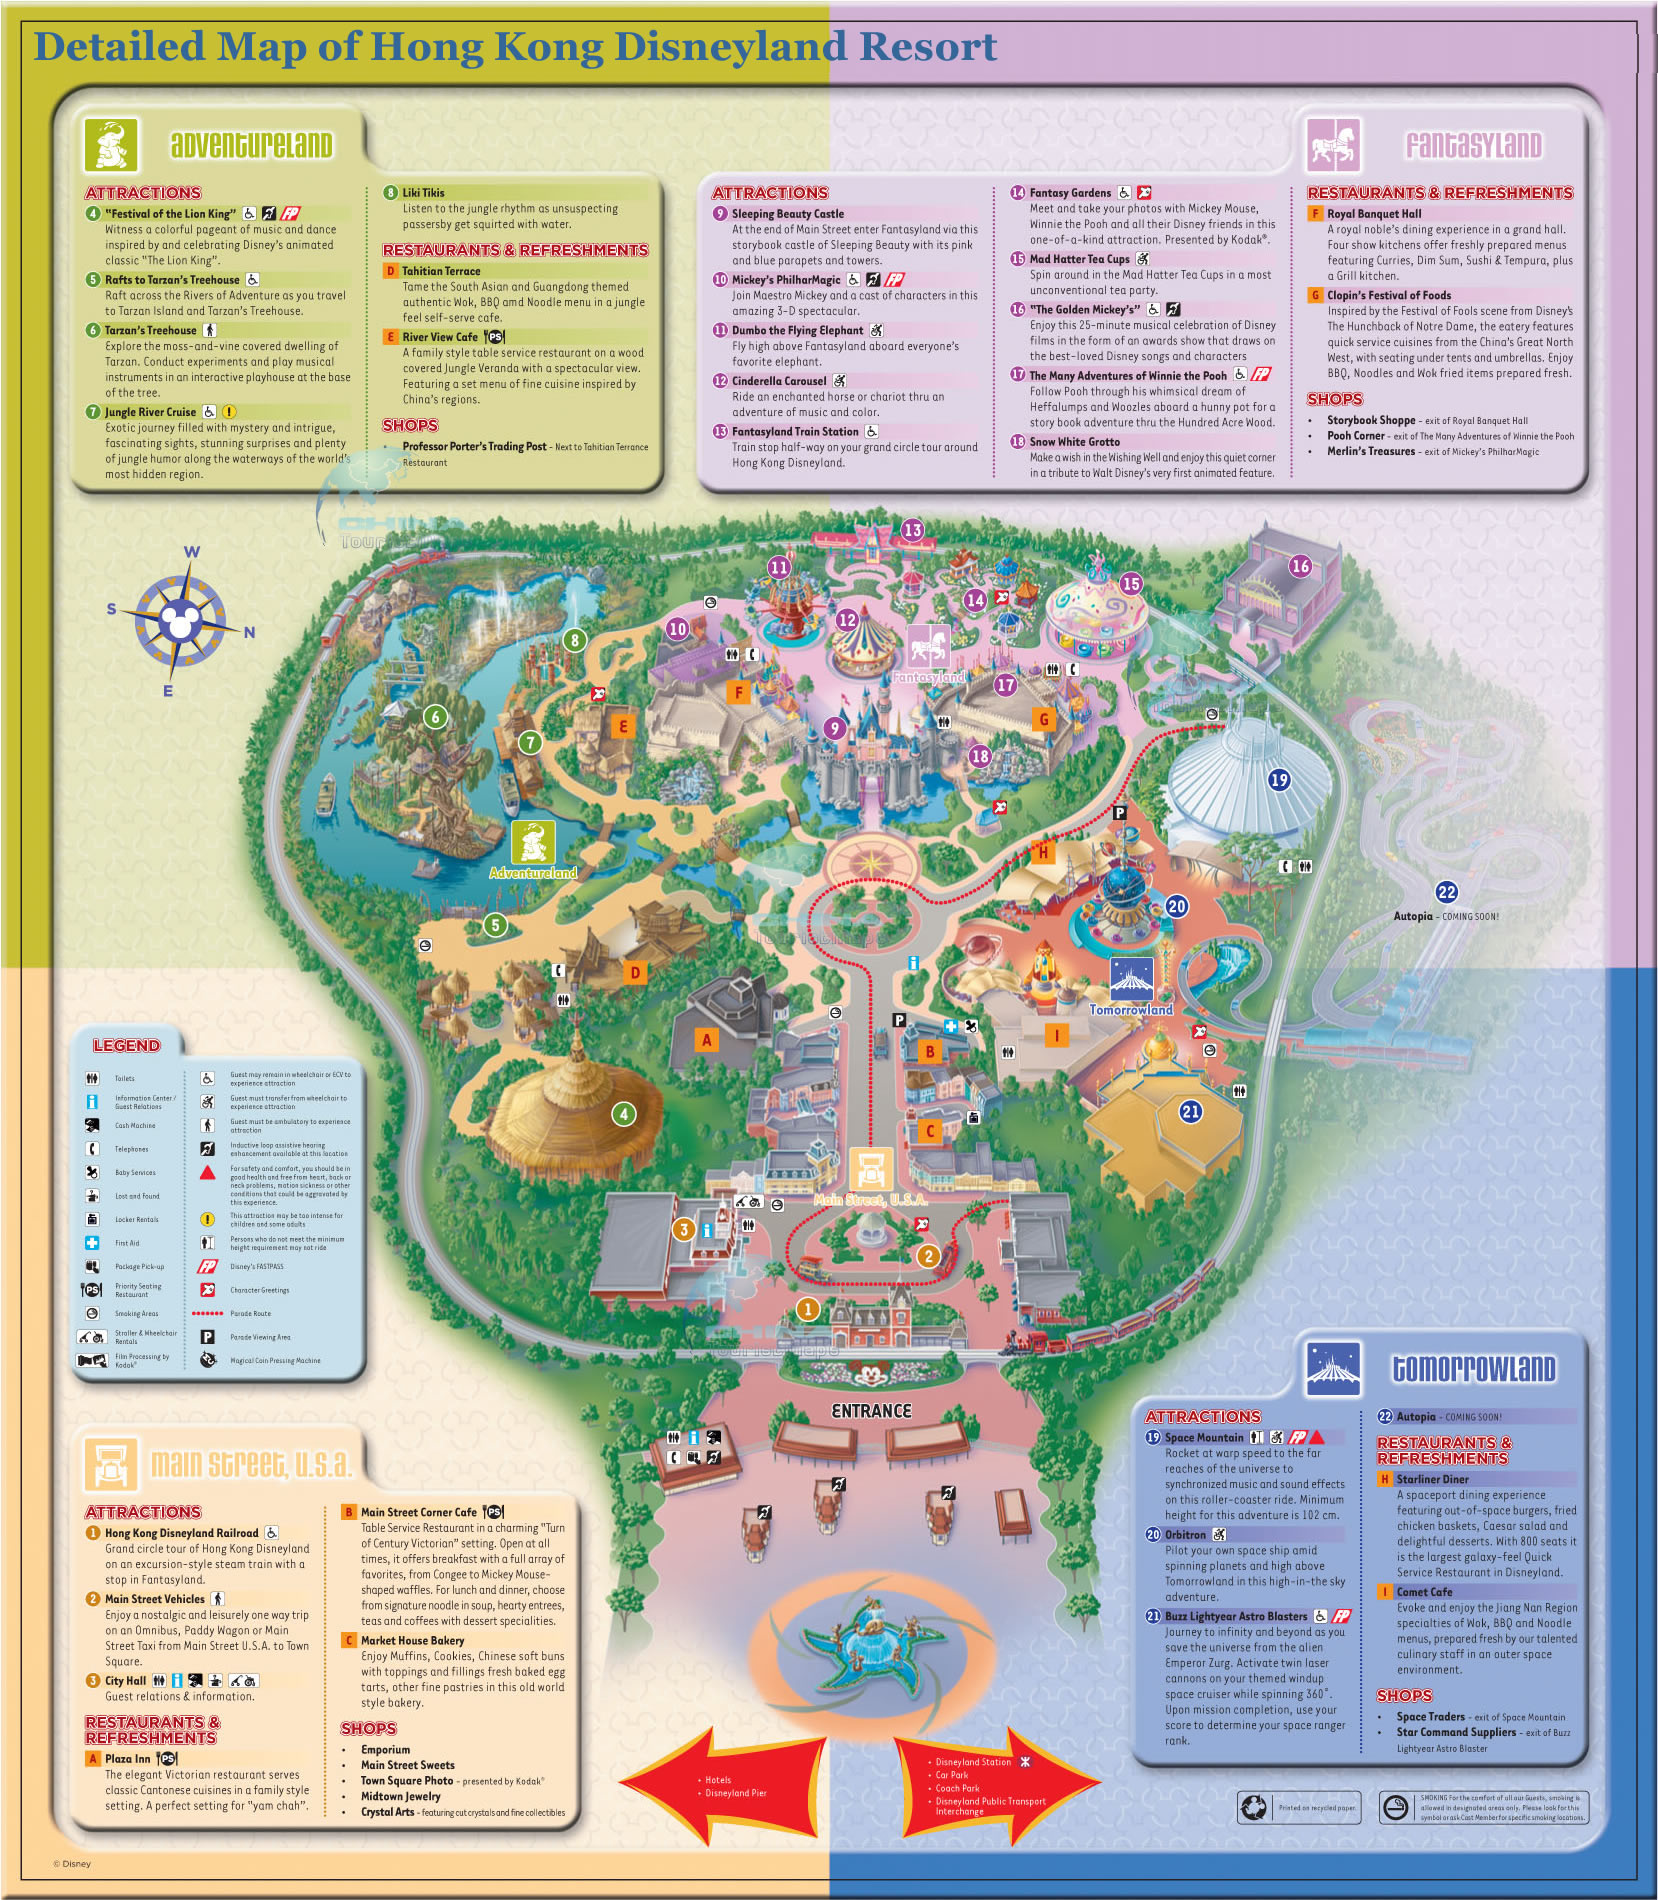 Hong Kong Disneyland Map Detailed Map of Hong Kong Disneyland Resort ? Four Themed Lands  Hong Kong Disneyland Map